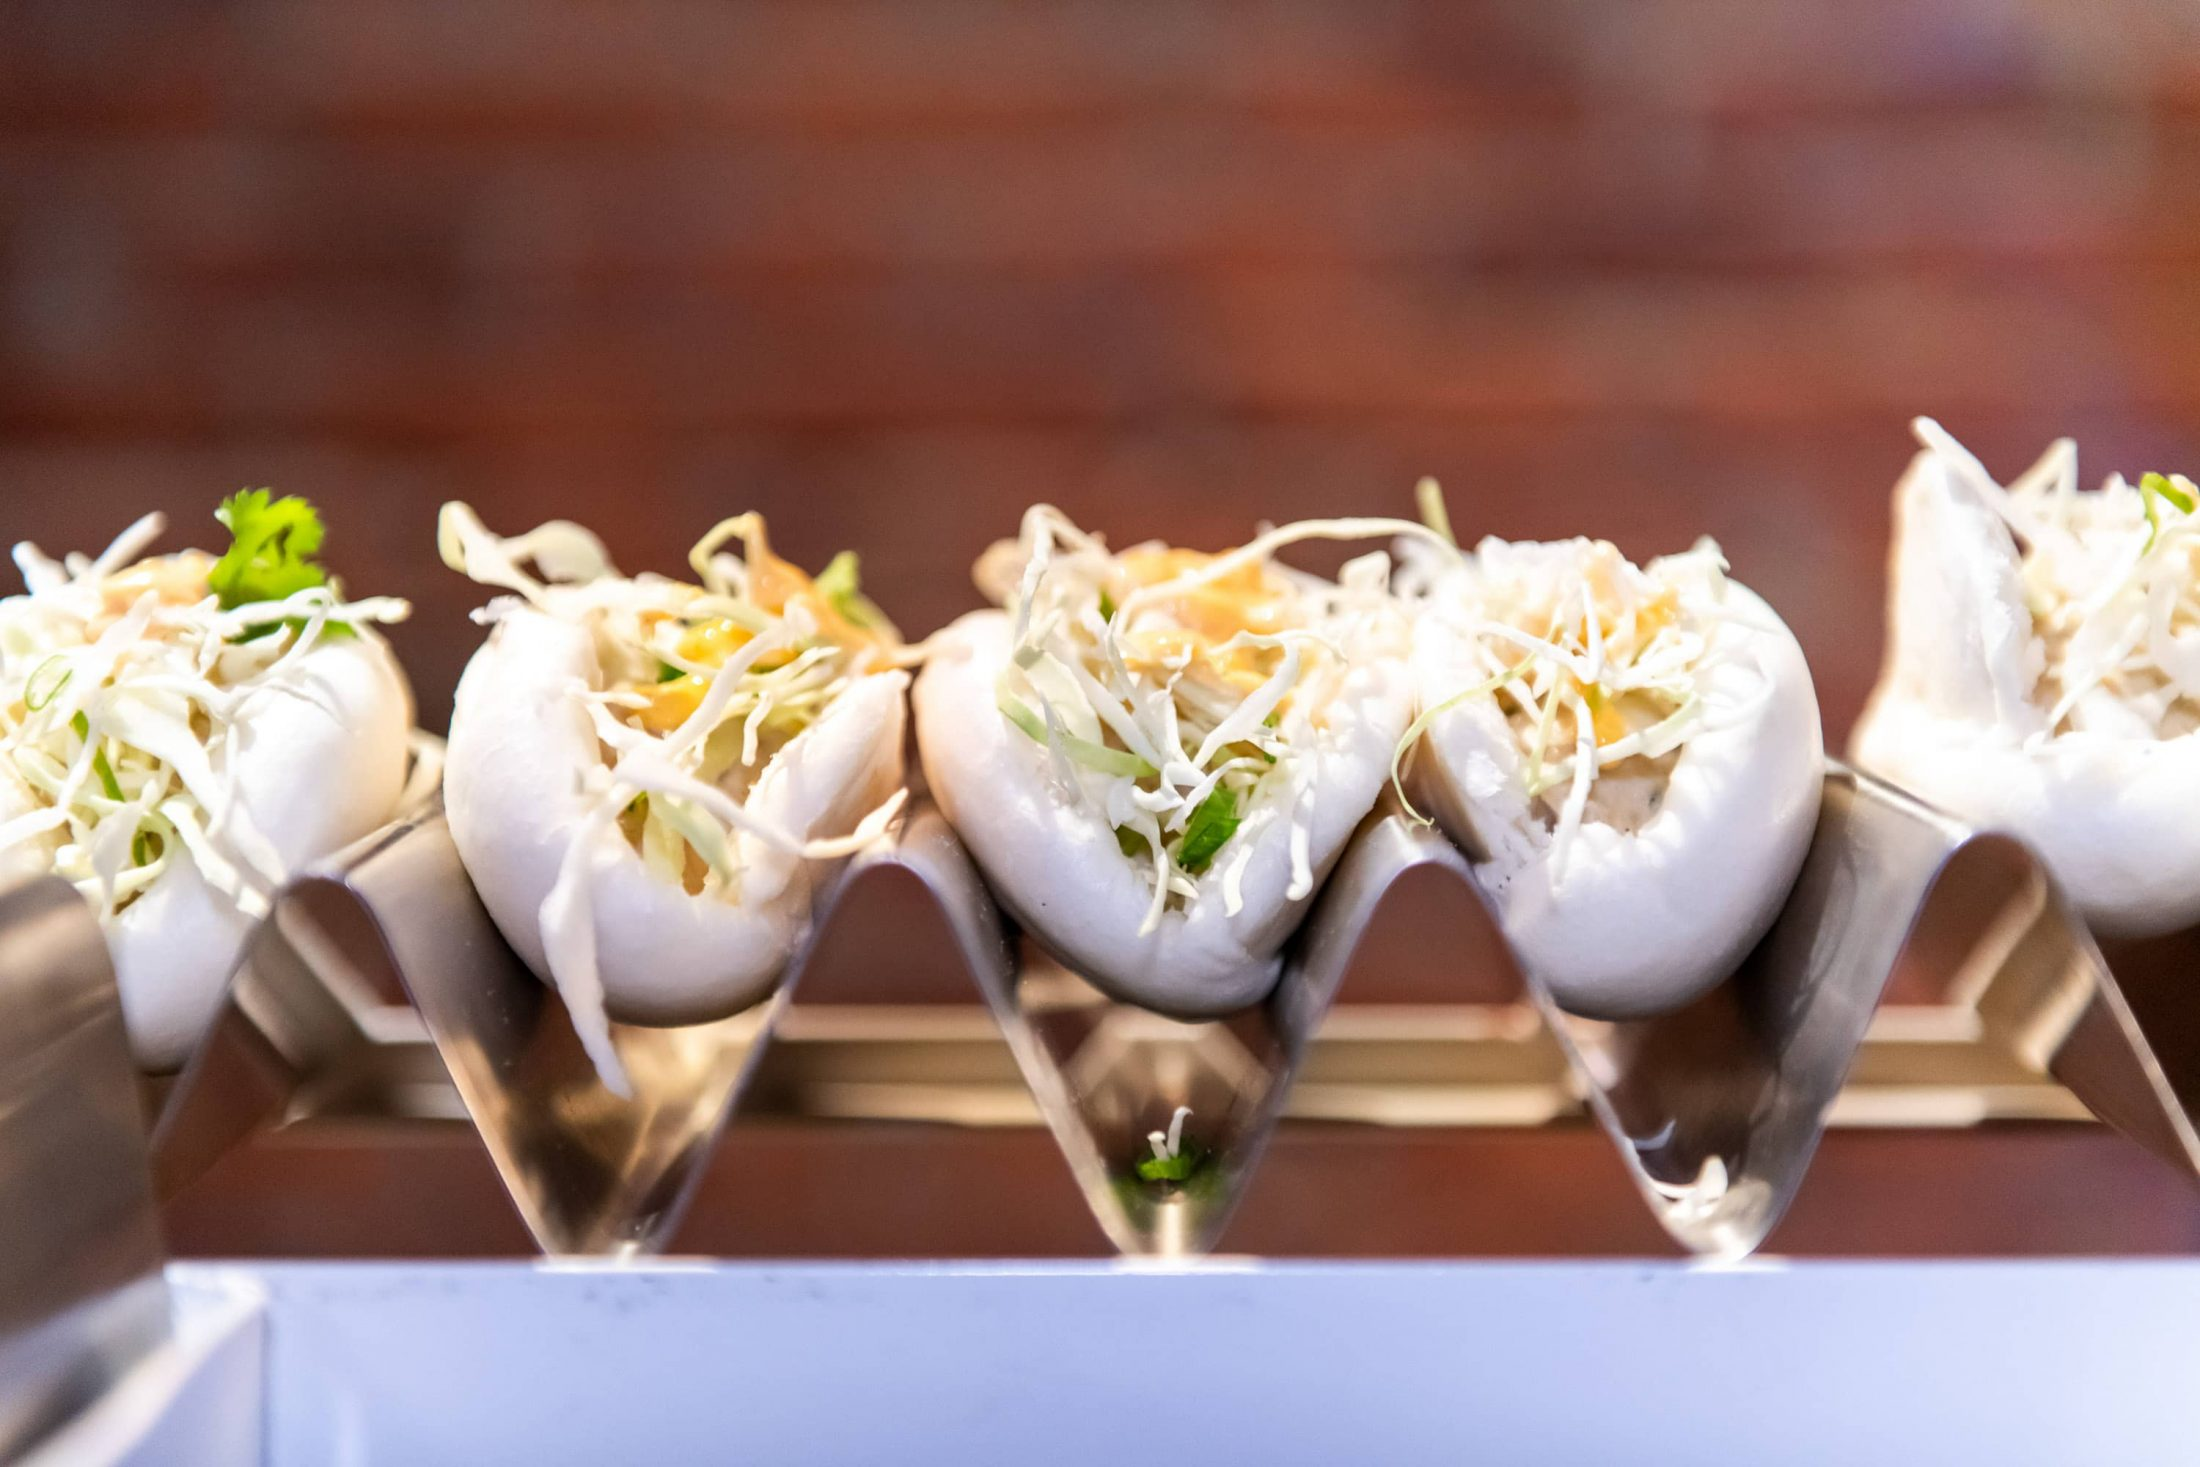 Gua bao station at this Brooklyn Museum rehearsal dinner in NYC | Photo by Gruber Photo